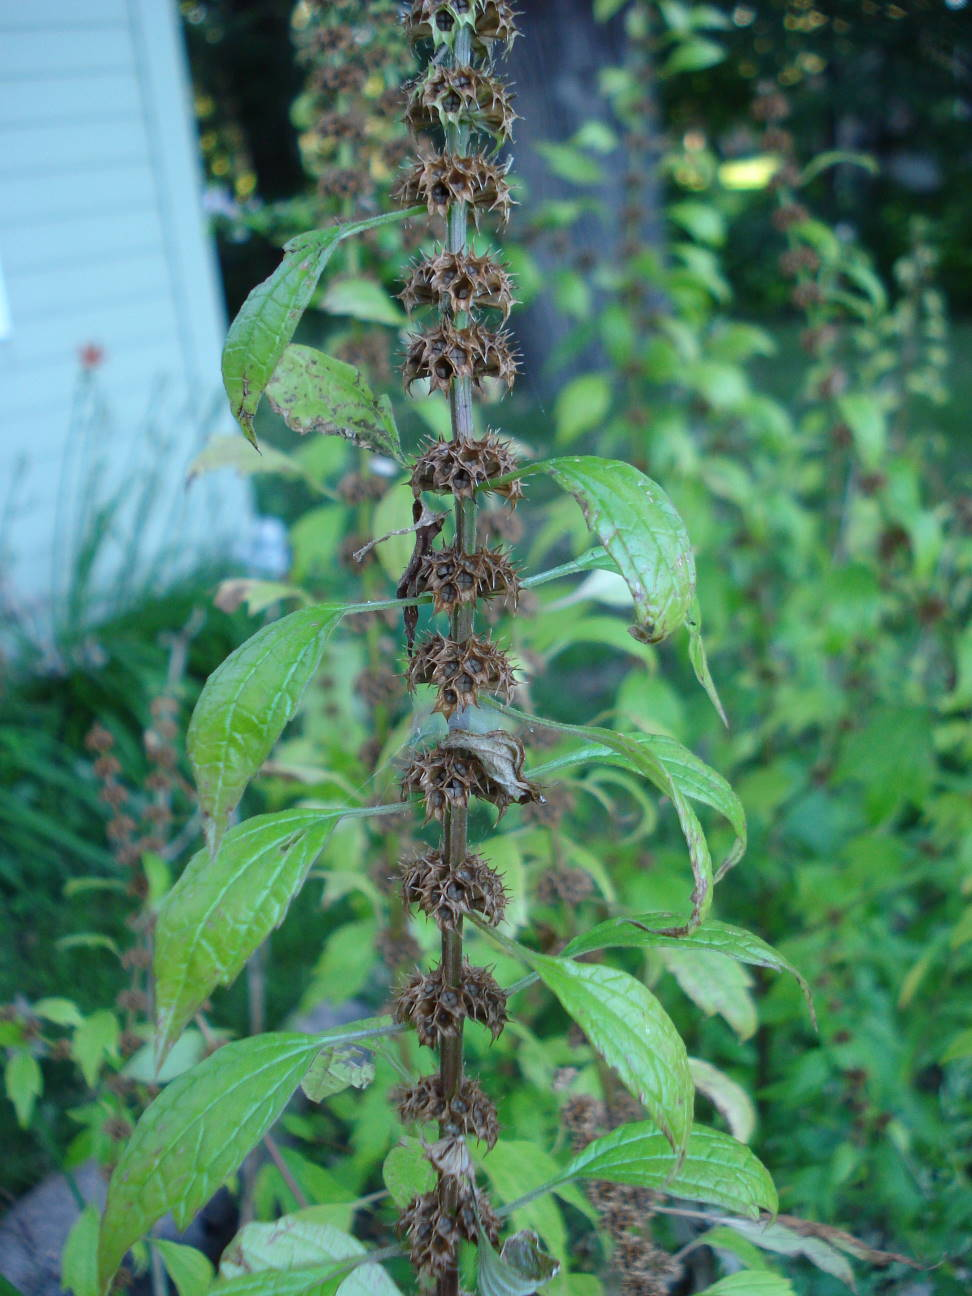 Motherwort at the end of summer, August 25, 2015, by Mary Warner.